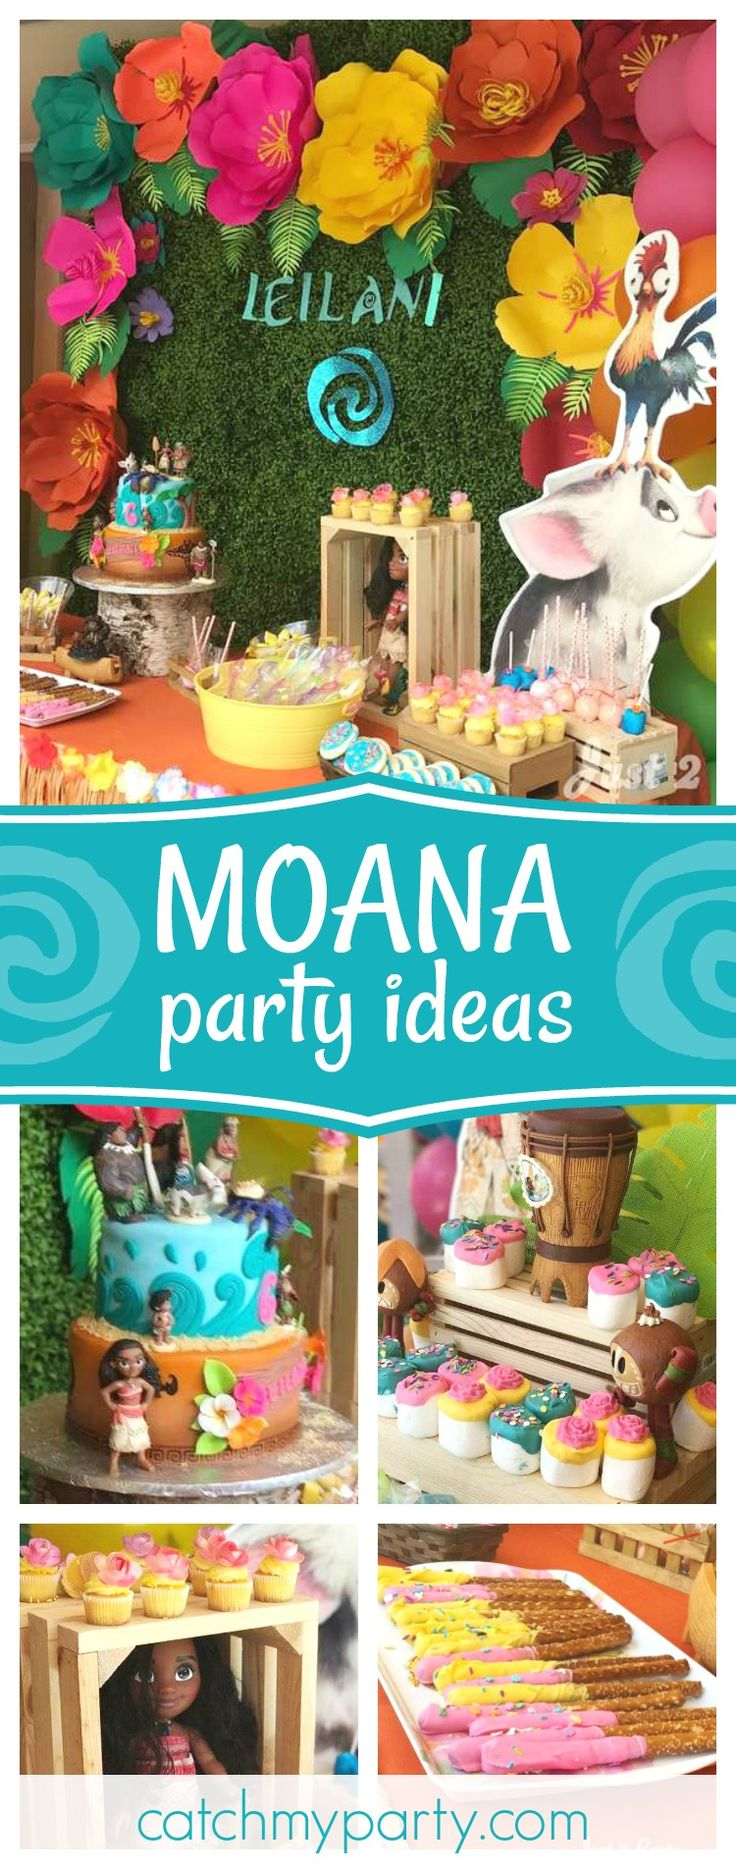 252 Best Moana Birthday Party Ideas Images On Pinterest